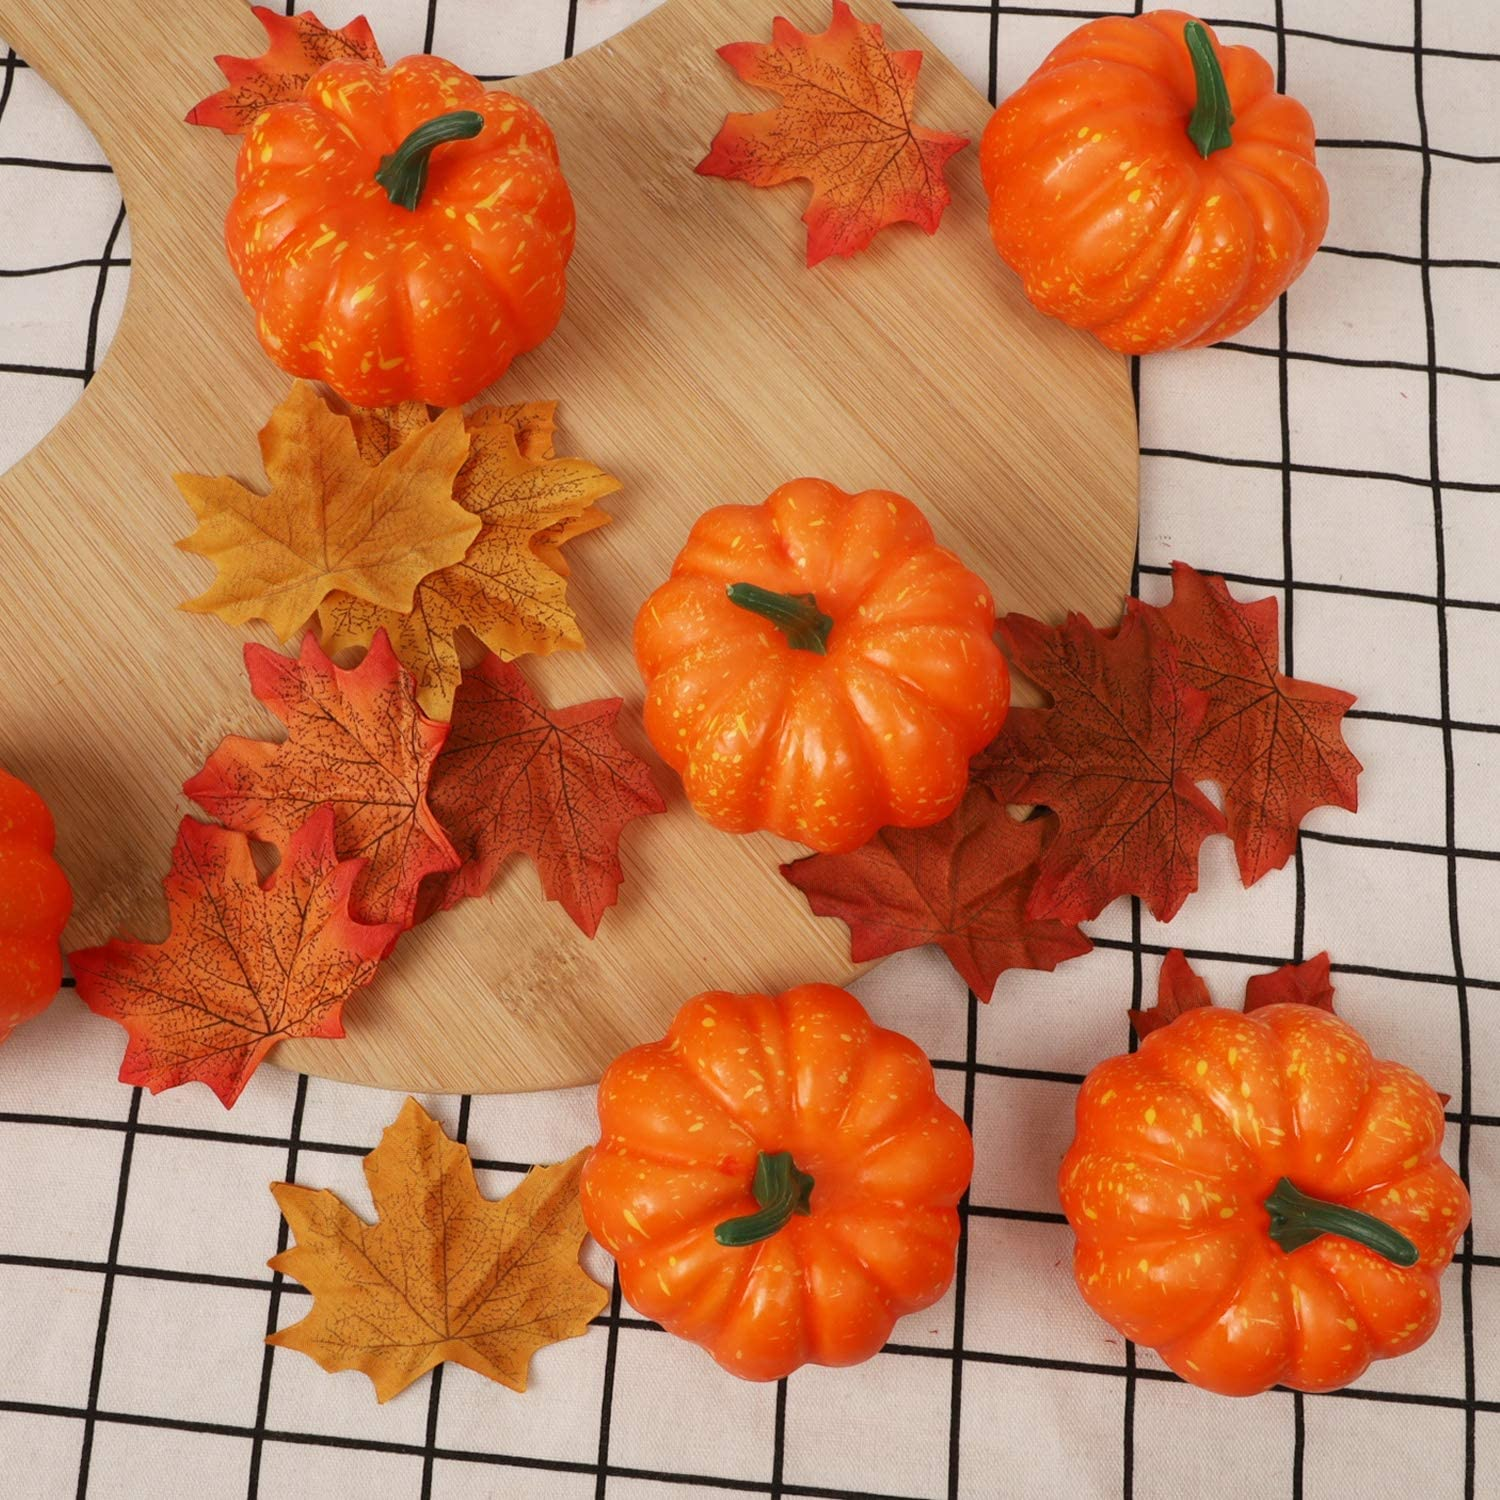 Lulu Home Artificial Pumpkins for Decoration 12PCS Mini Fake Pumpkins with 30PCS Lifelike Maple Leaves Artificial Vegetables for April Fools Day Decorations Halloween